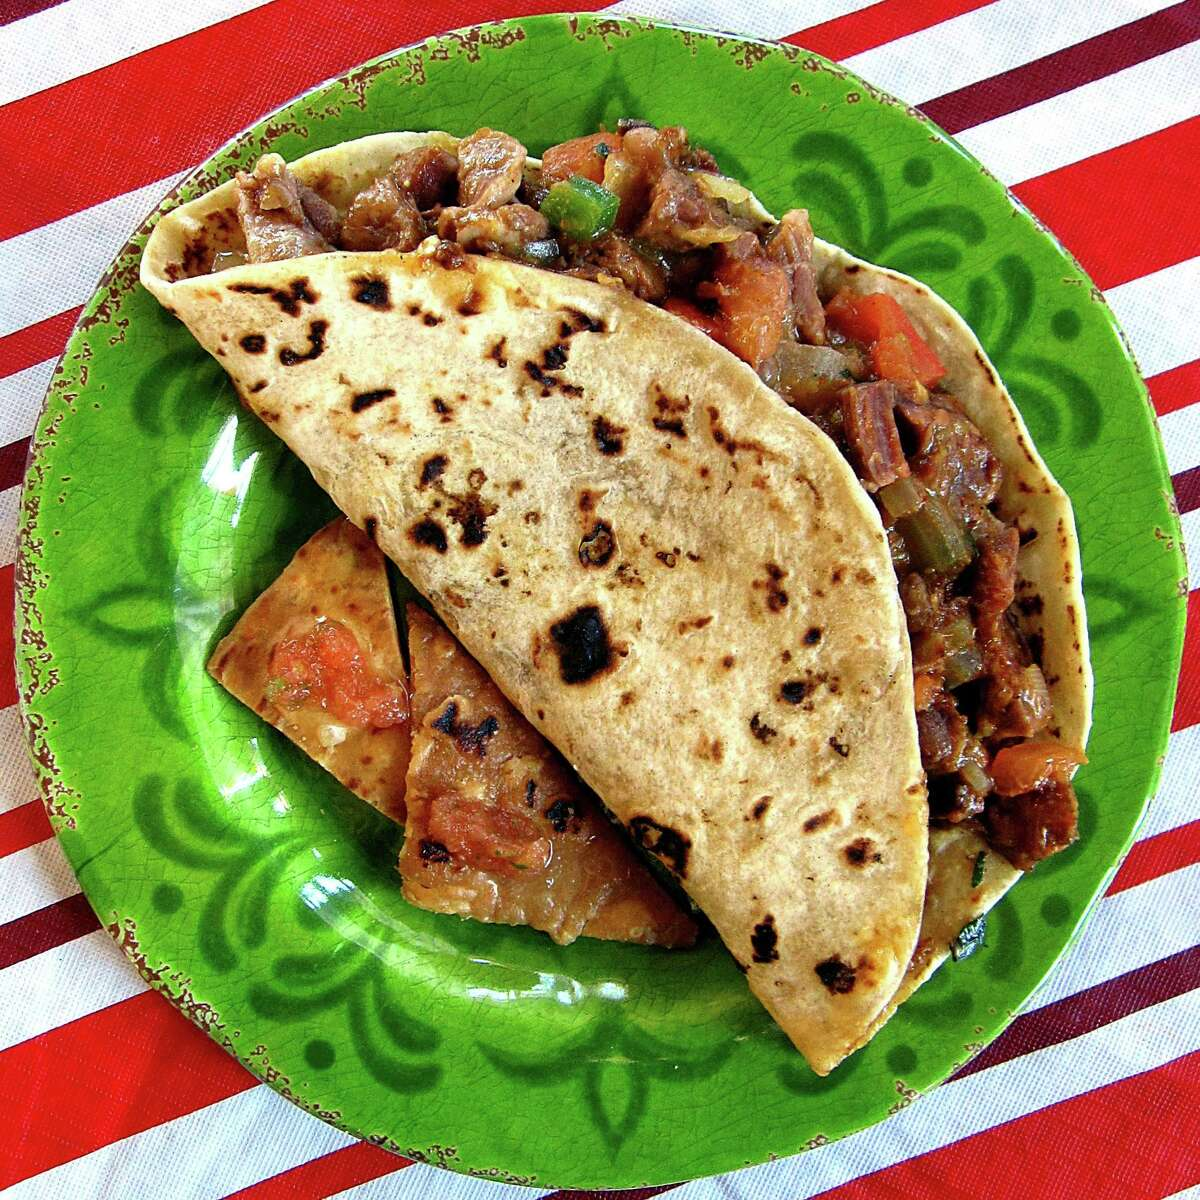 Taco of the Week: Carne con chile taco on a handmade flour tortilla from Danny's Cocina Mexicana on Callaghan Road.